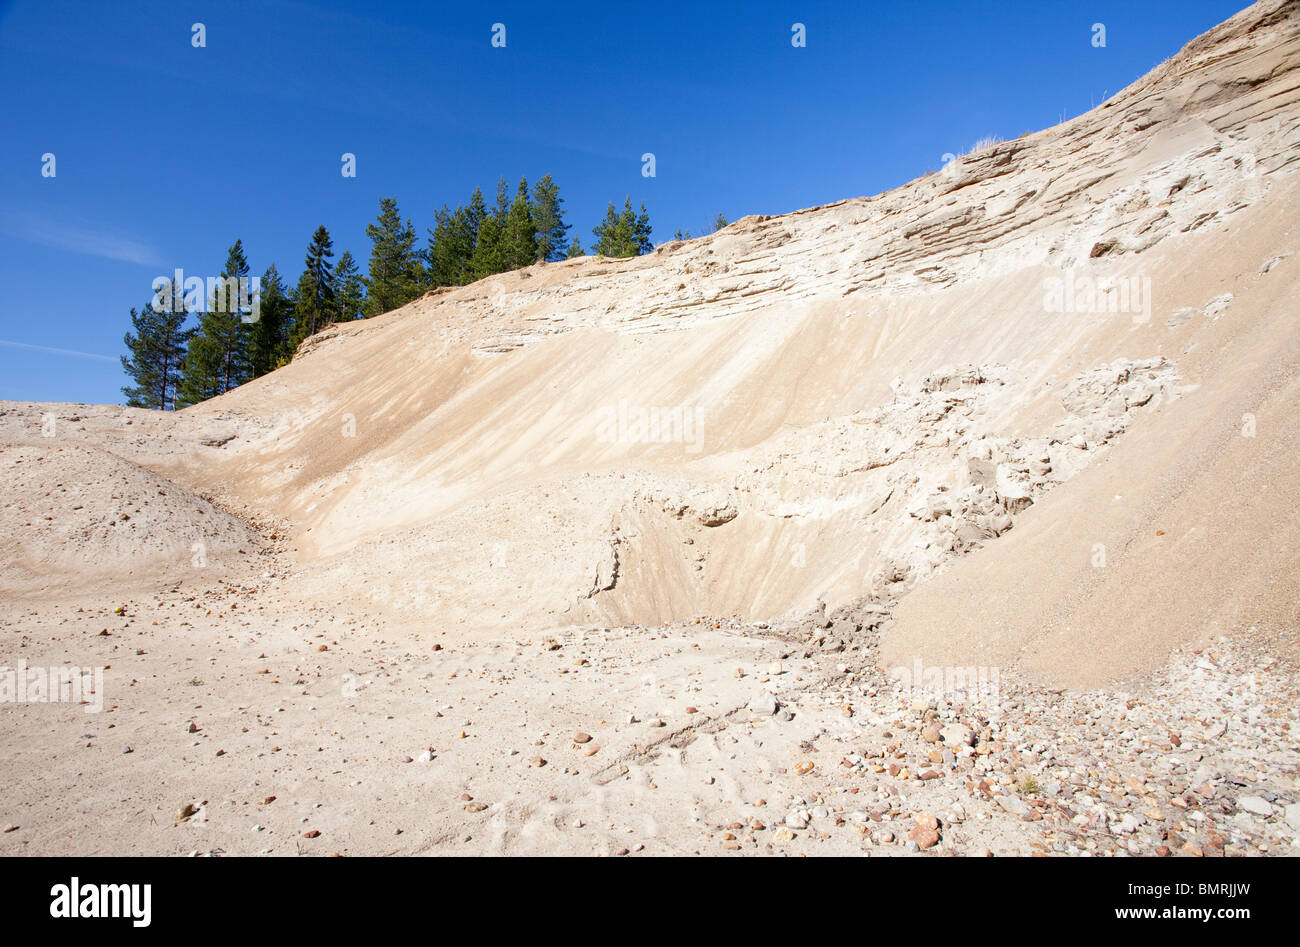 Erosion on a sandpit wall at a sandy ridge , Finland - Stock Image